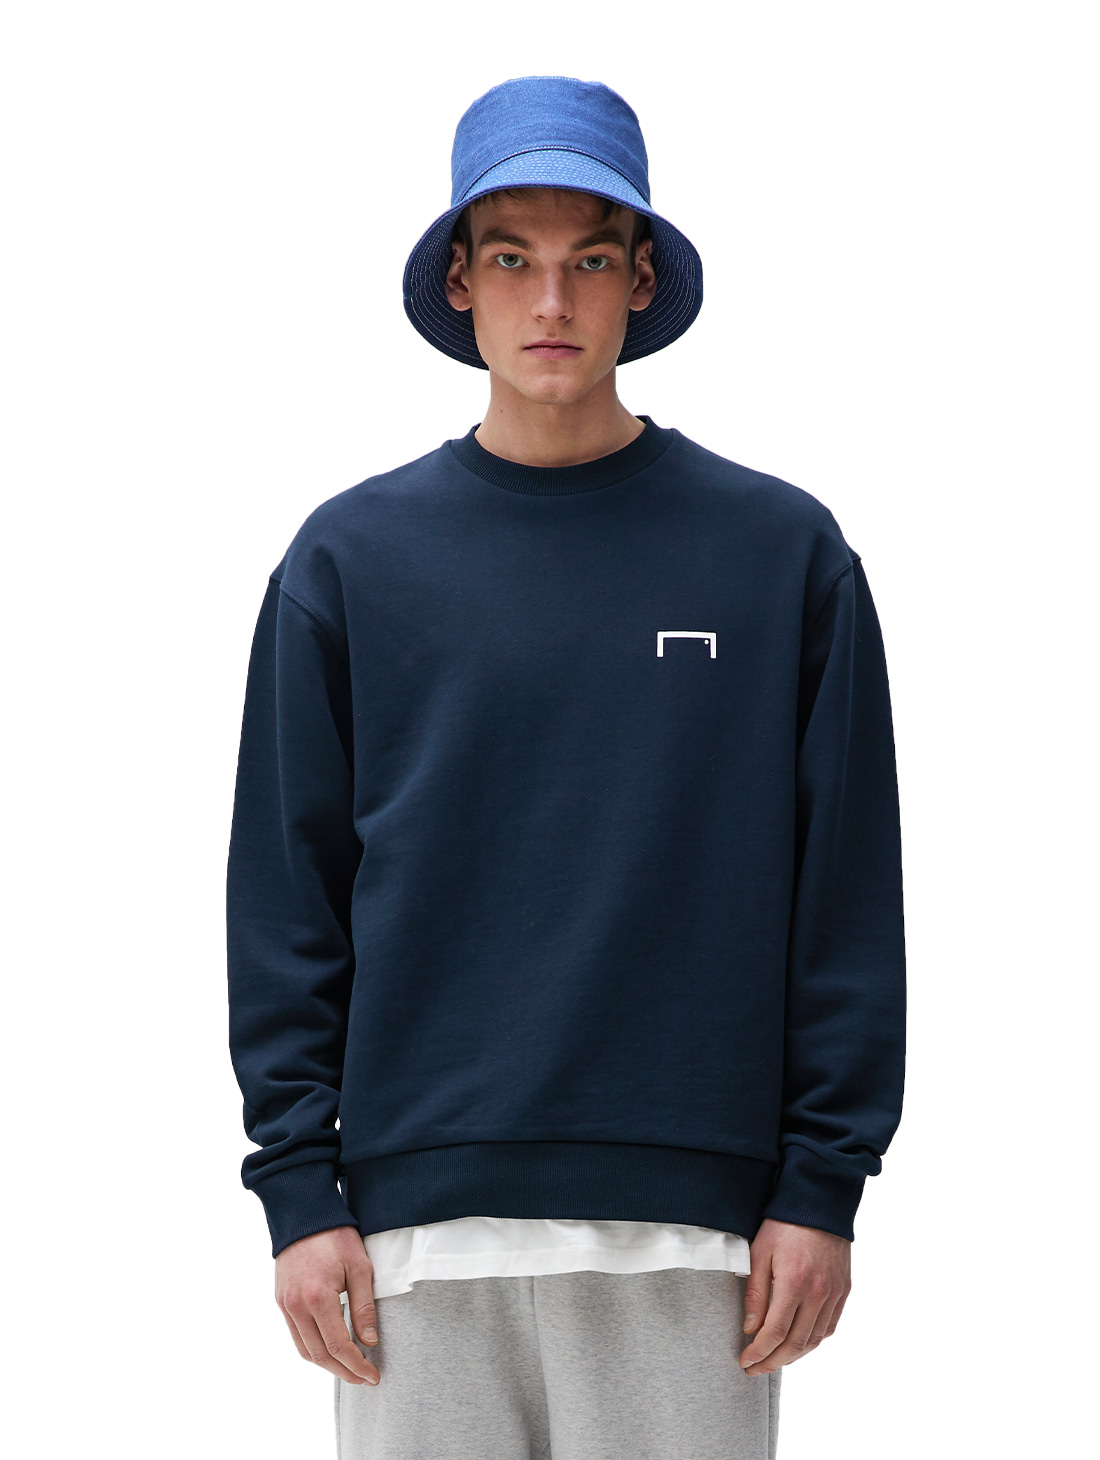 PULSE GRAPHIC SWEATSHIRT - NAVY